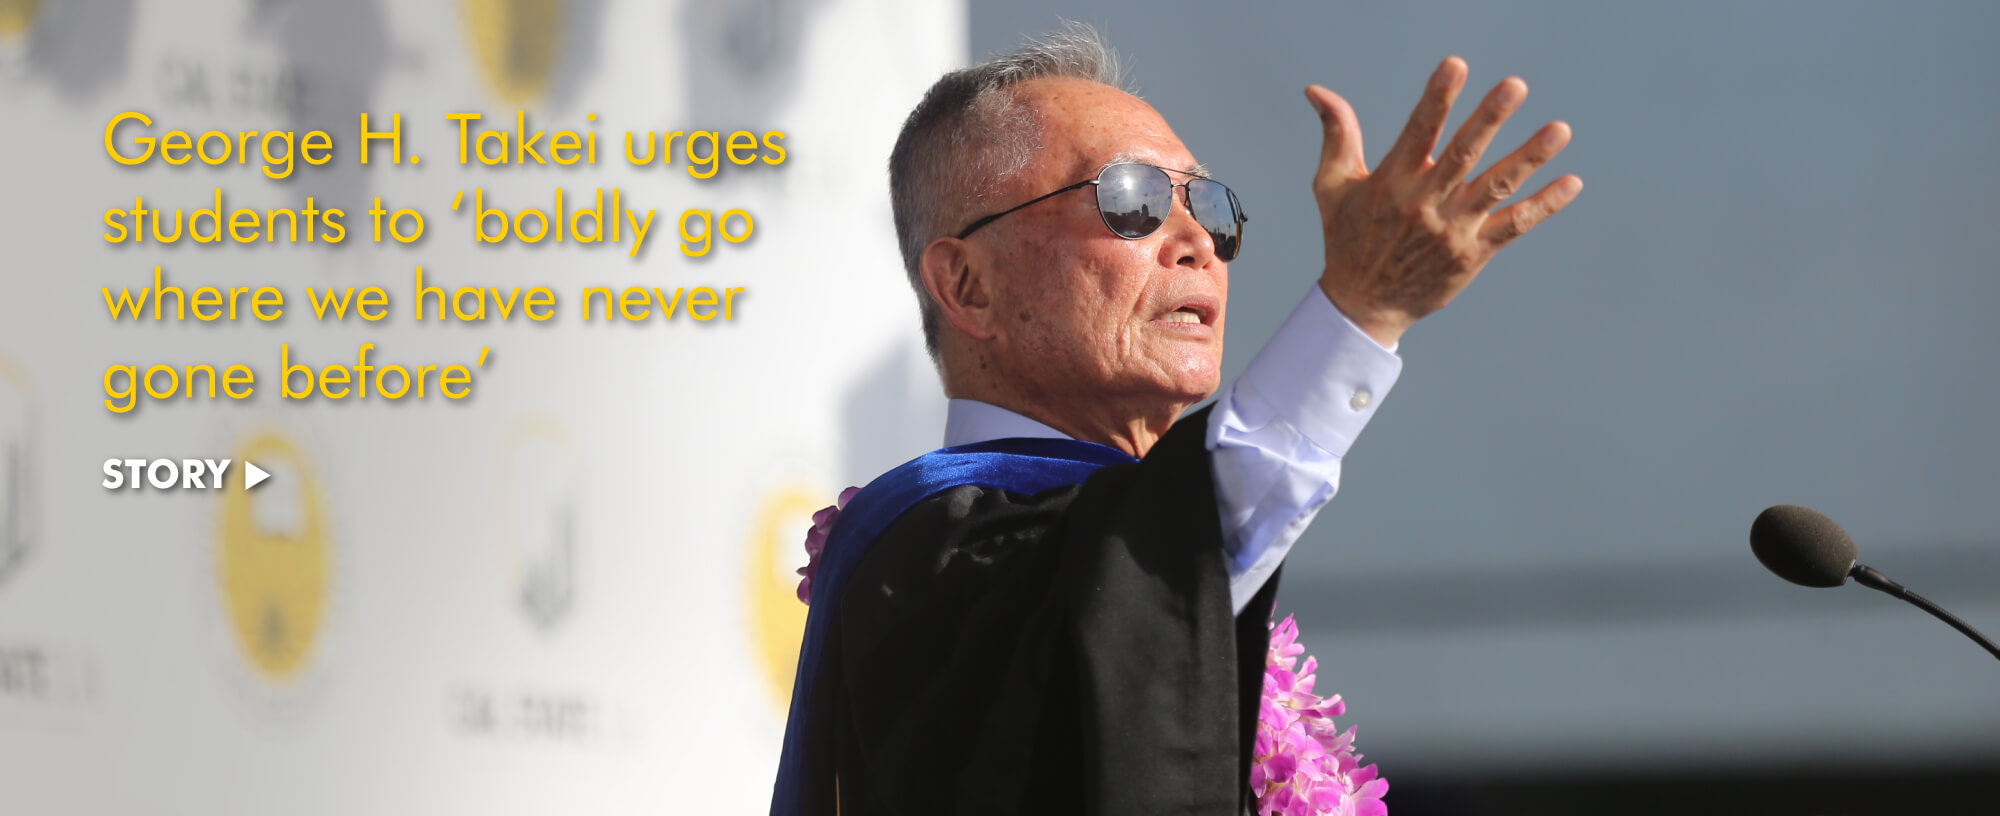 """George H. Takei urges students to """"boldly go where we have never gone before"""""""